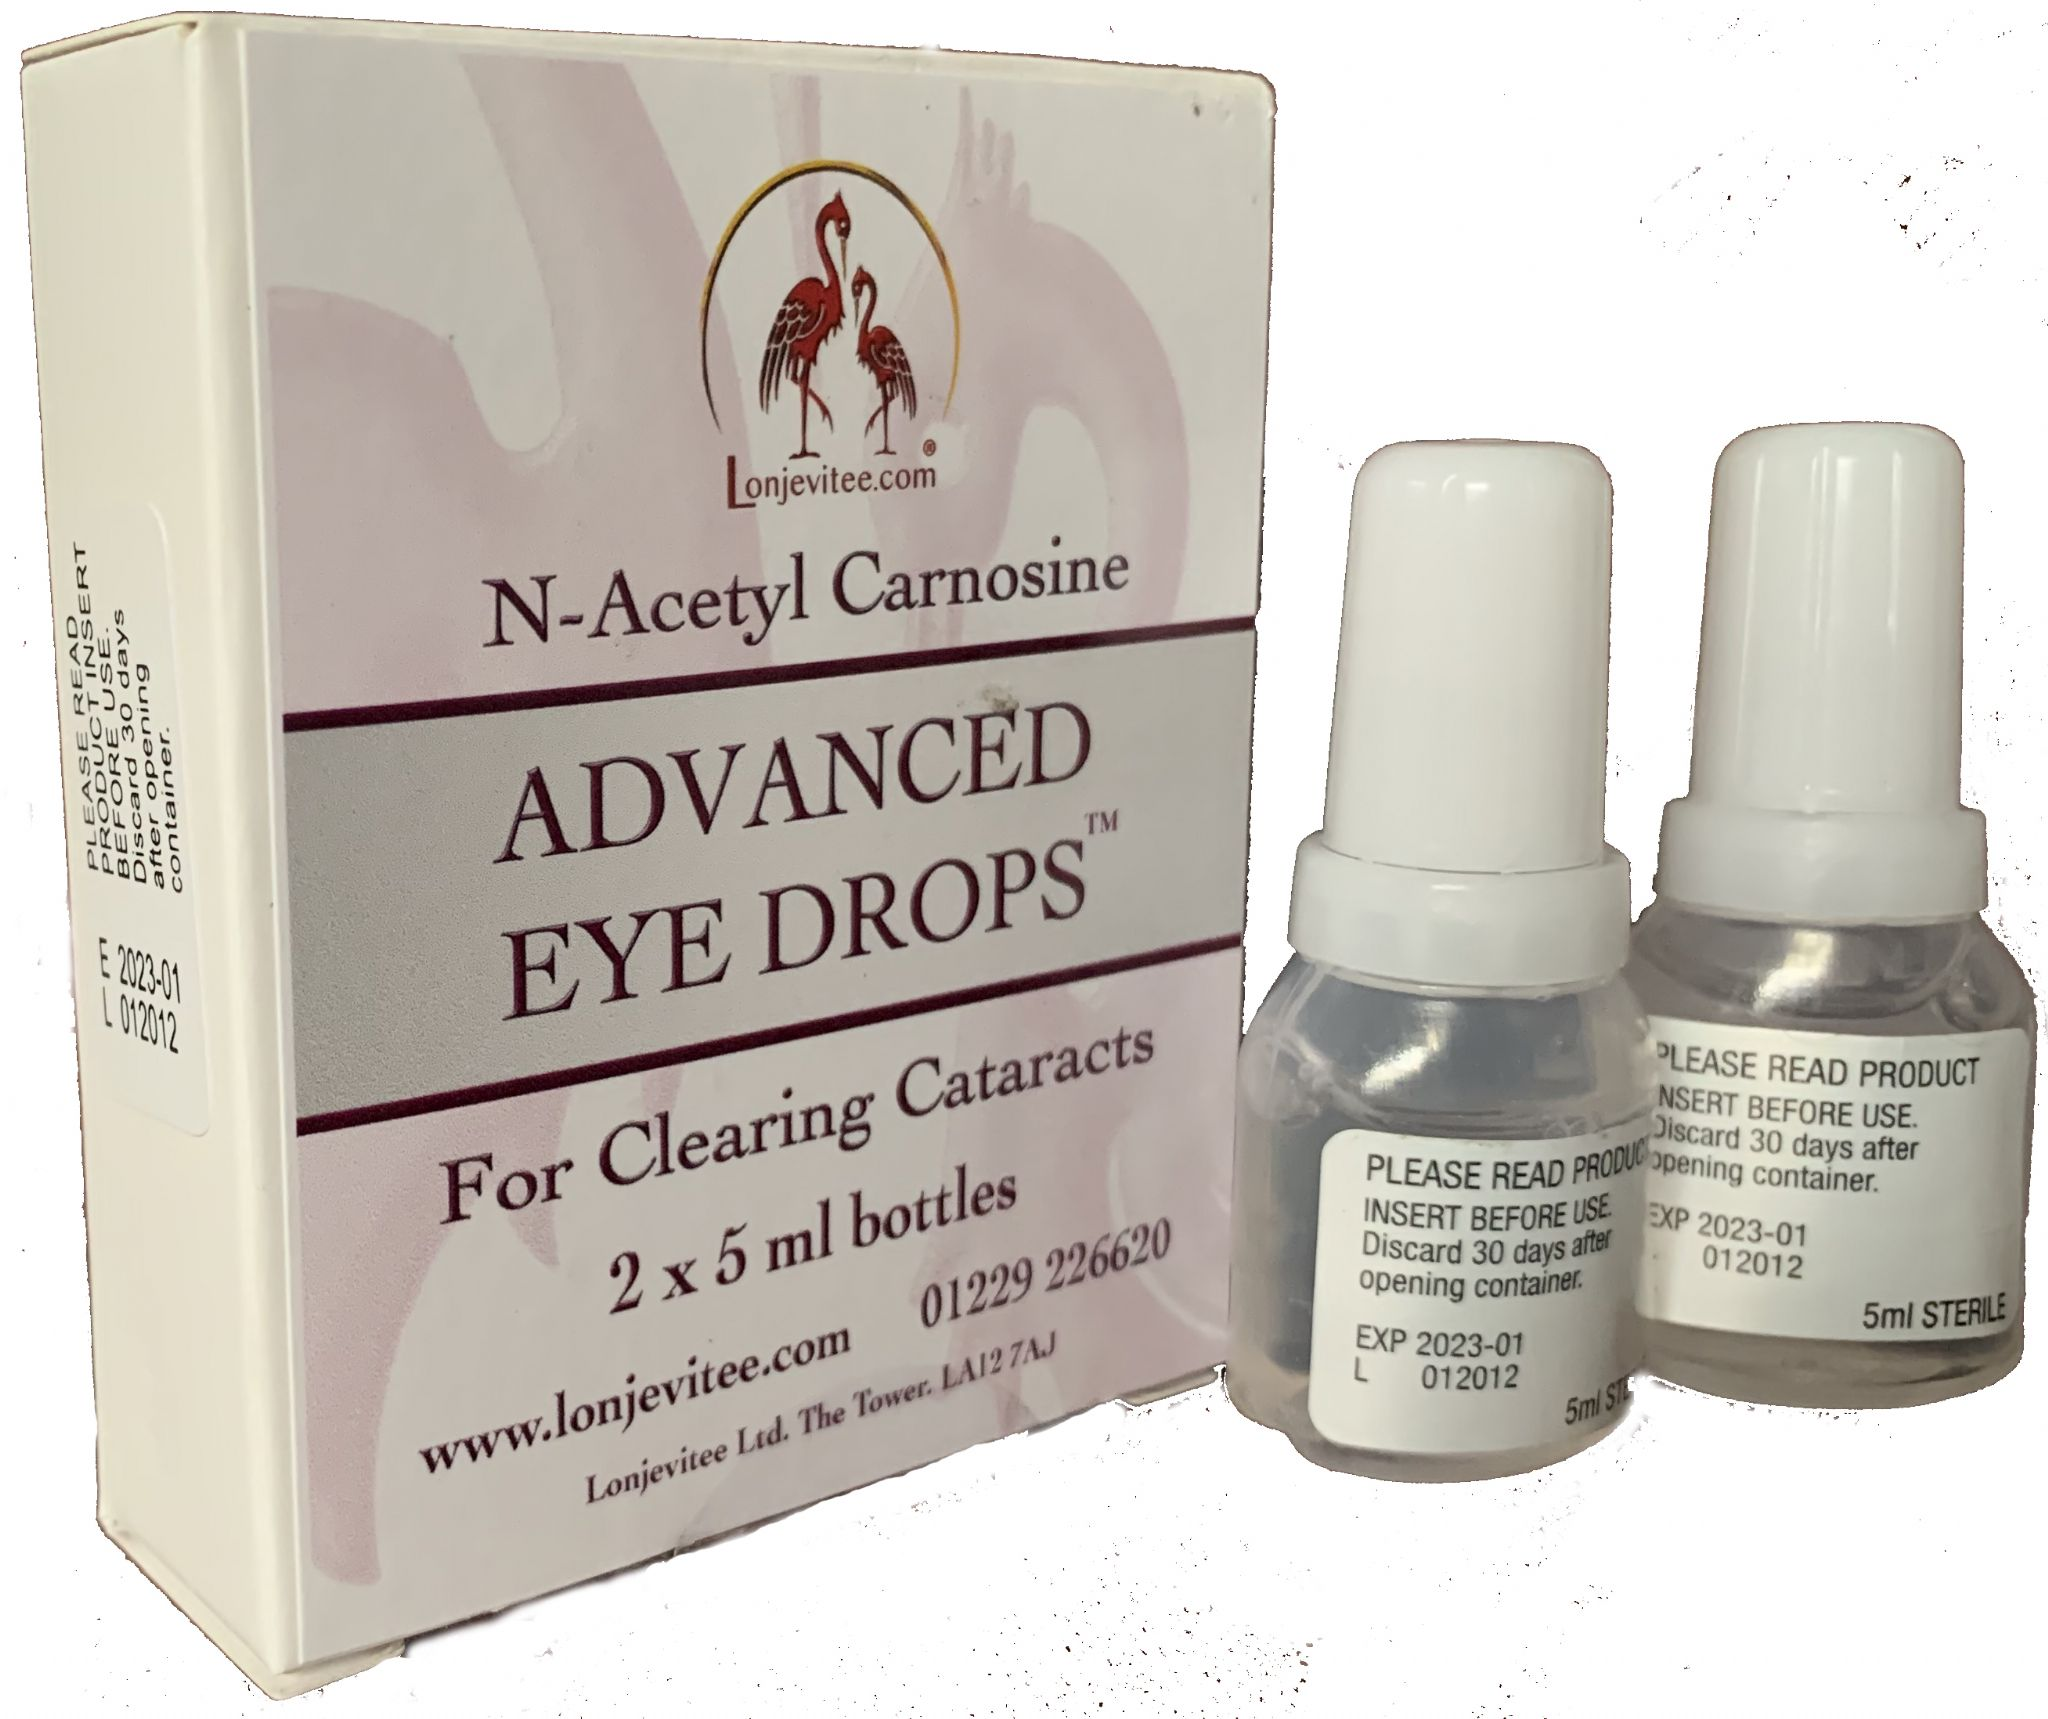 The Best Price And Most Effective N Acetyl Carnosine Eye